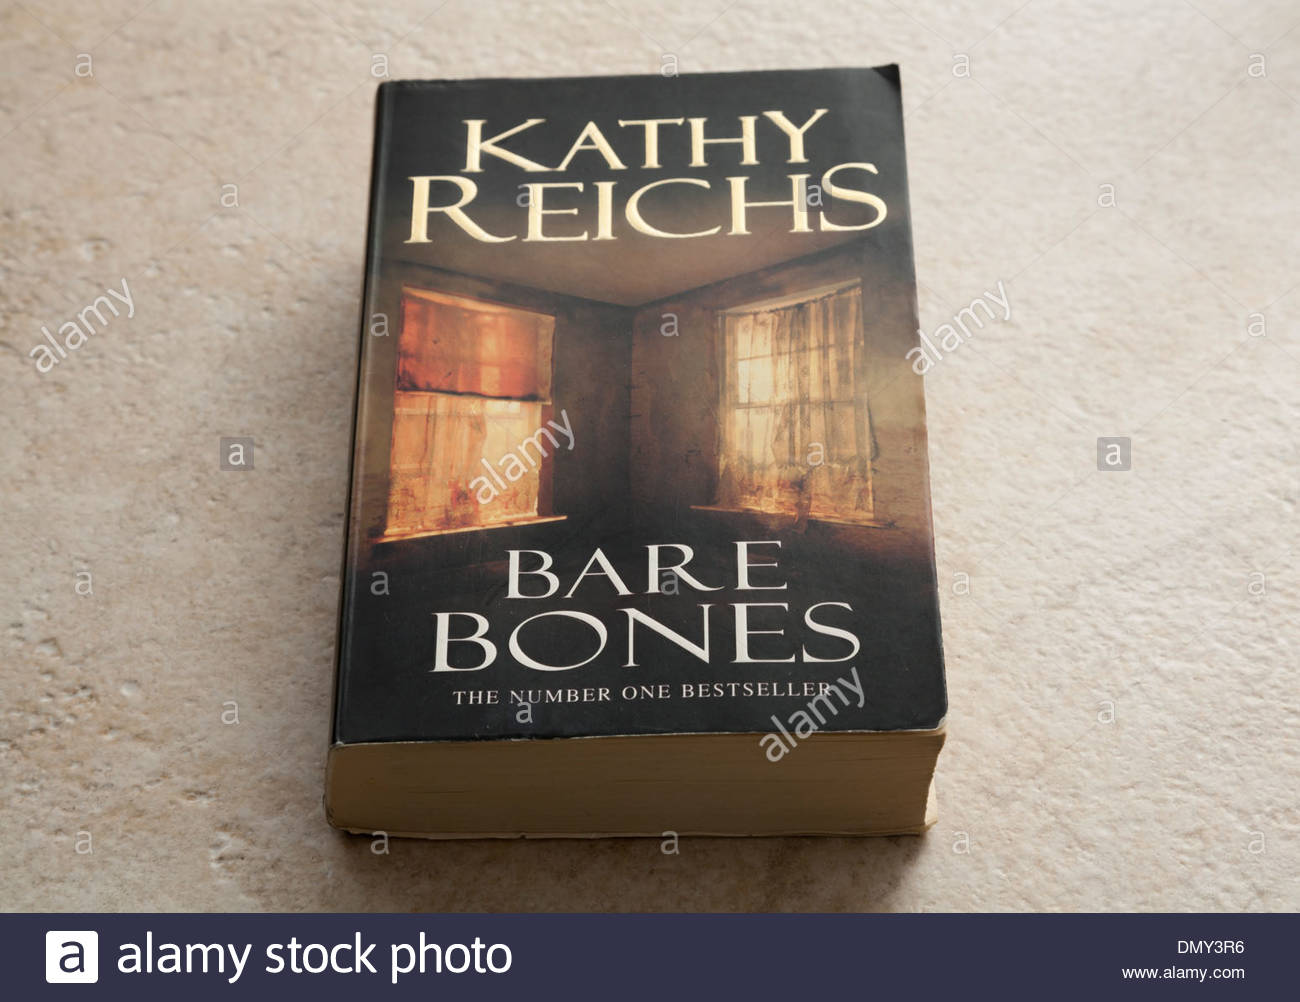 Crime fiction book written by Kathy Reichs EDITORIAL USE ONLY - Stock Image